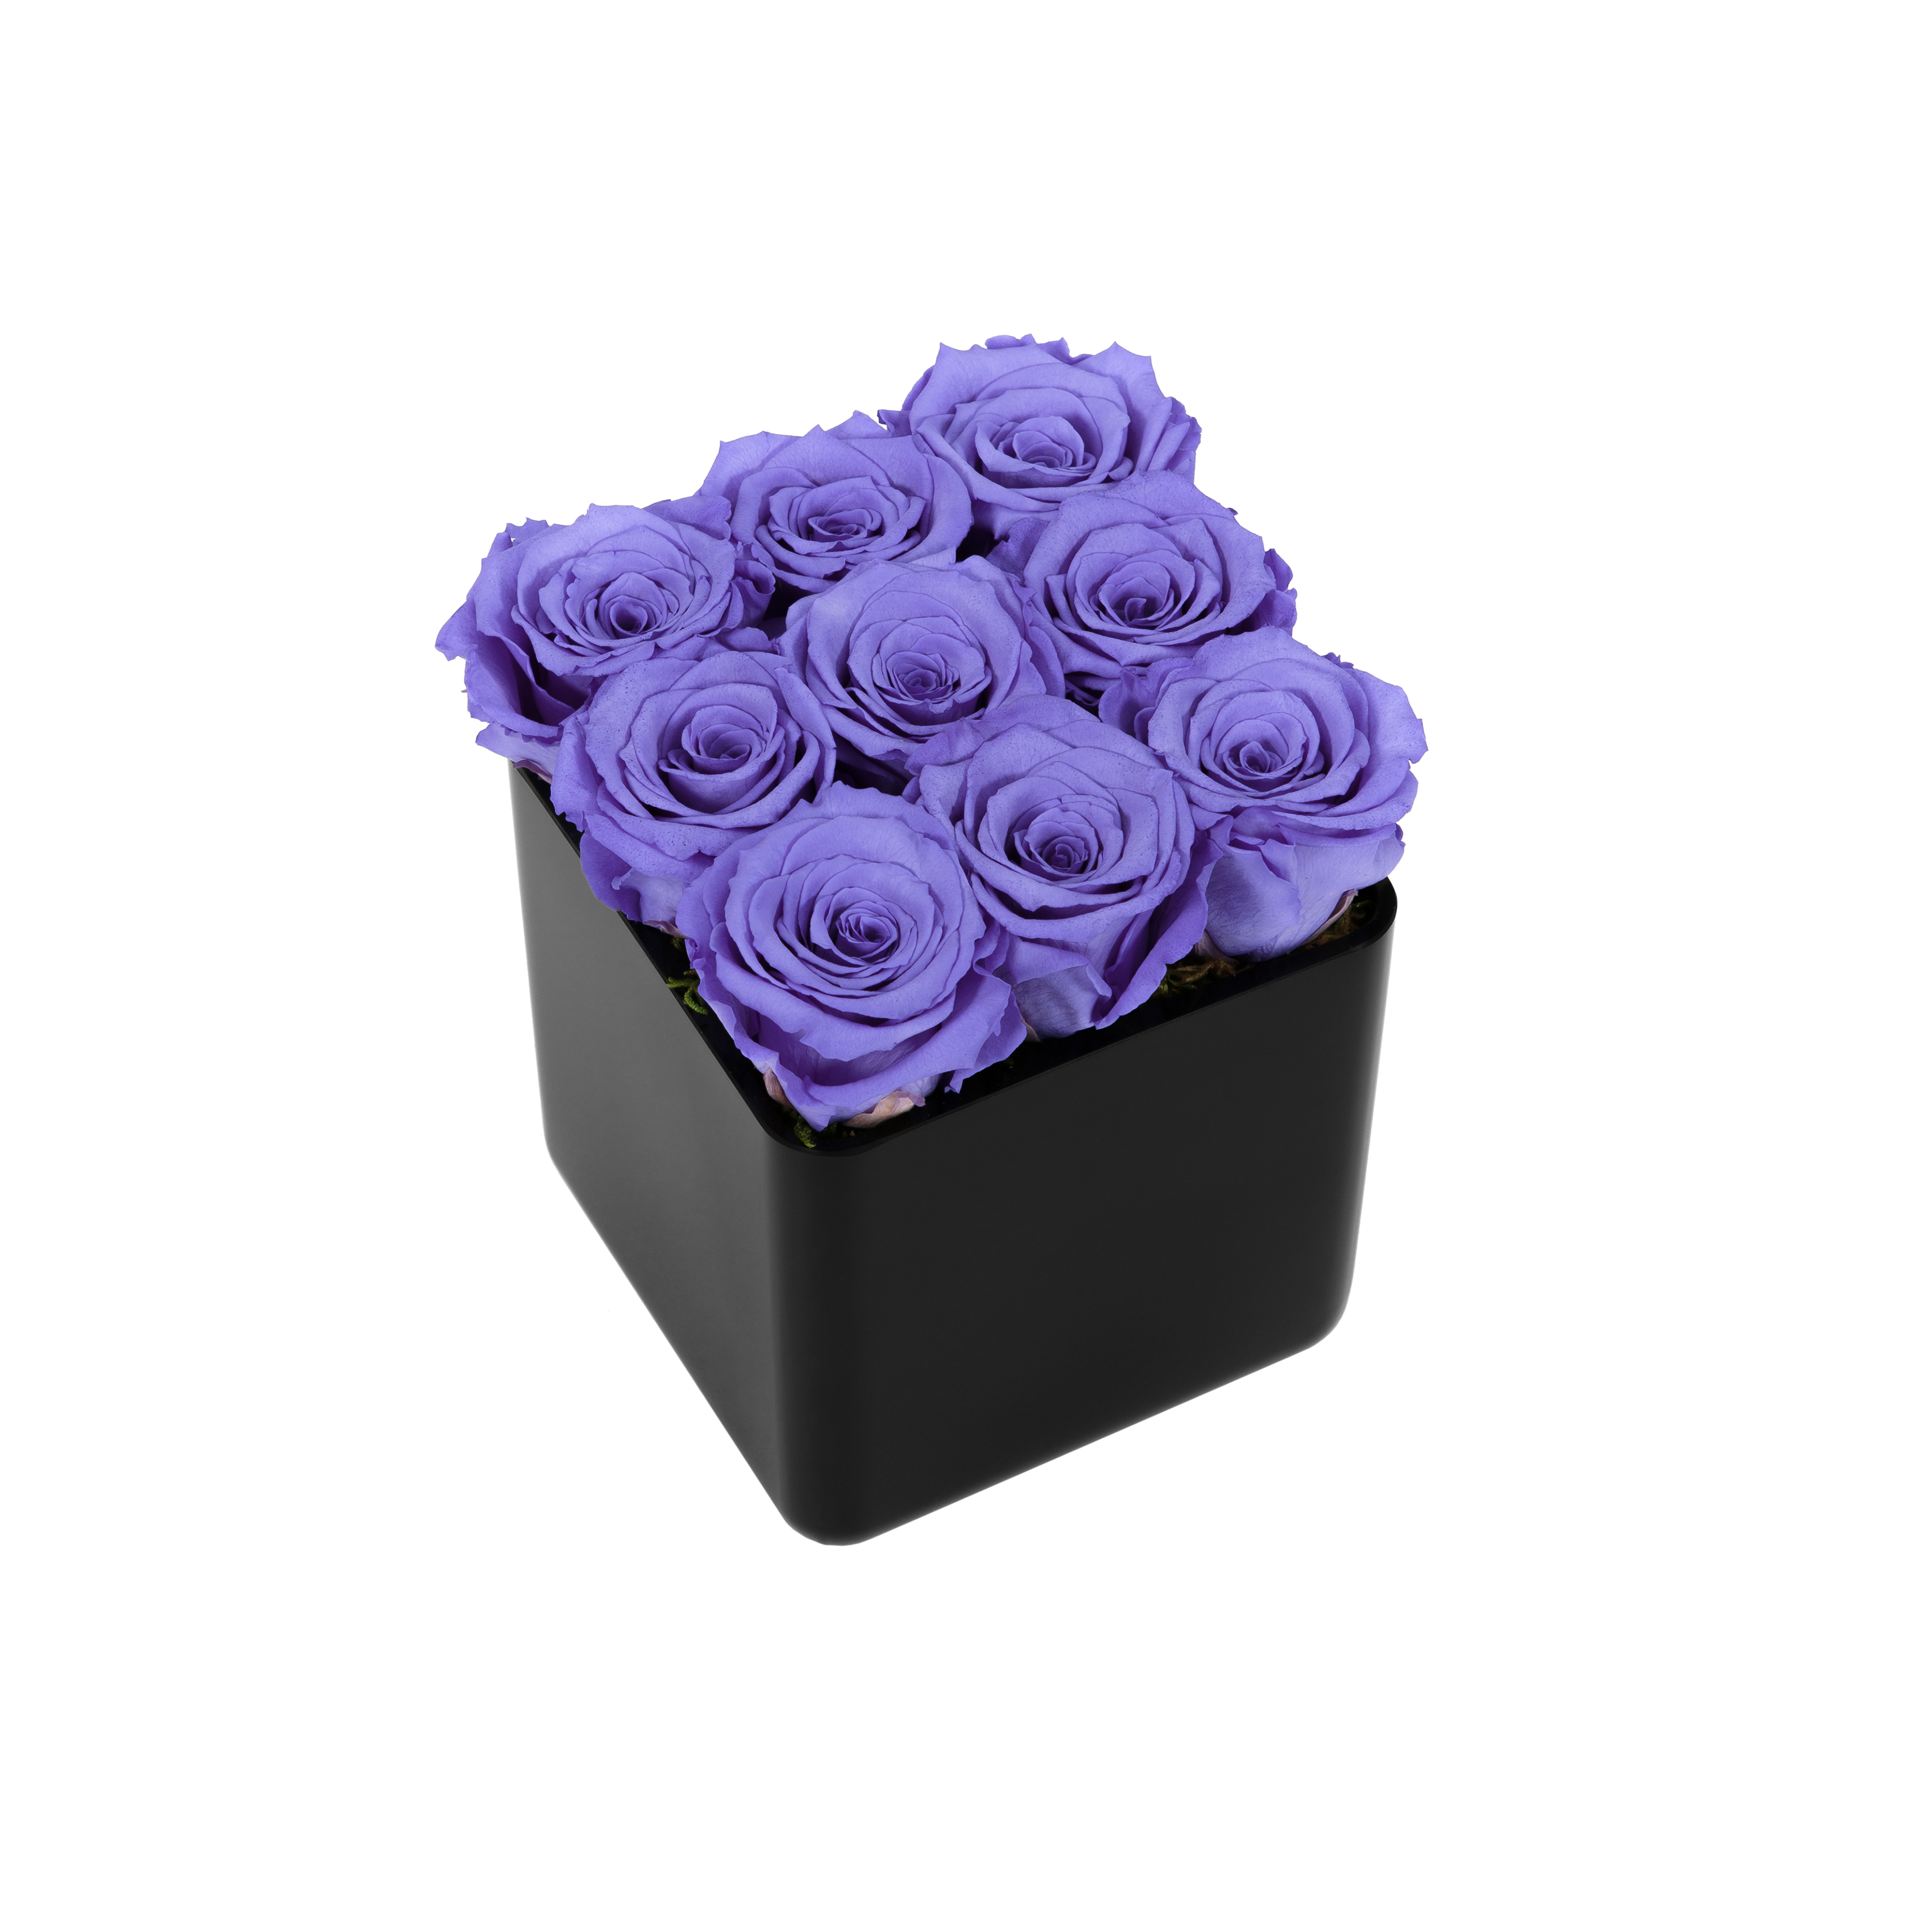 The infinite rose black cube onlyroses rose delivery service izmirmasajfo